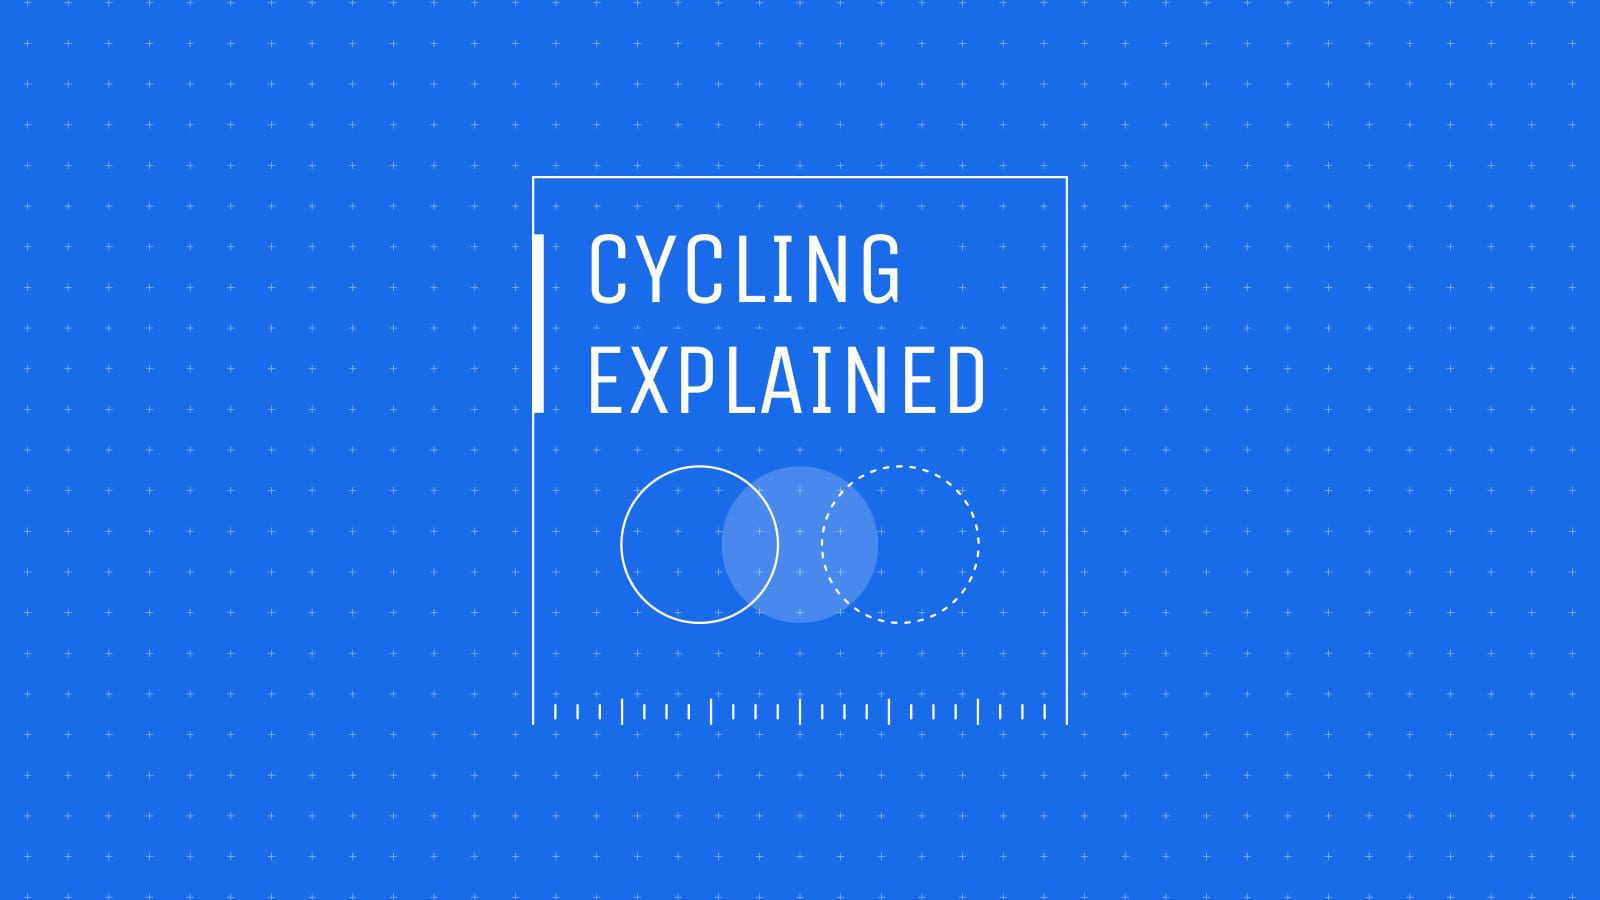 Logos_CyclingExplained_Blue